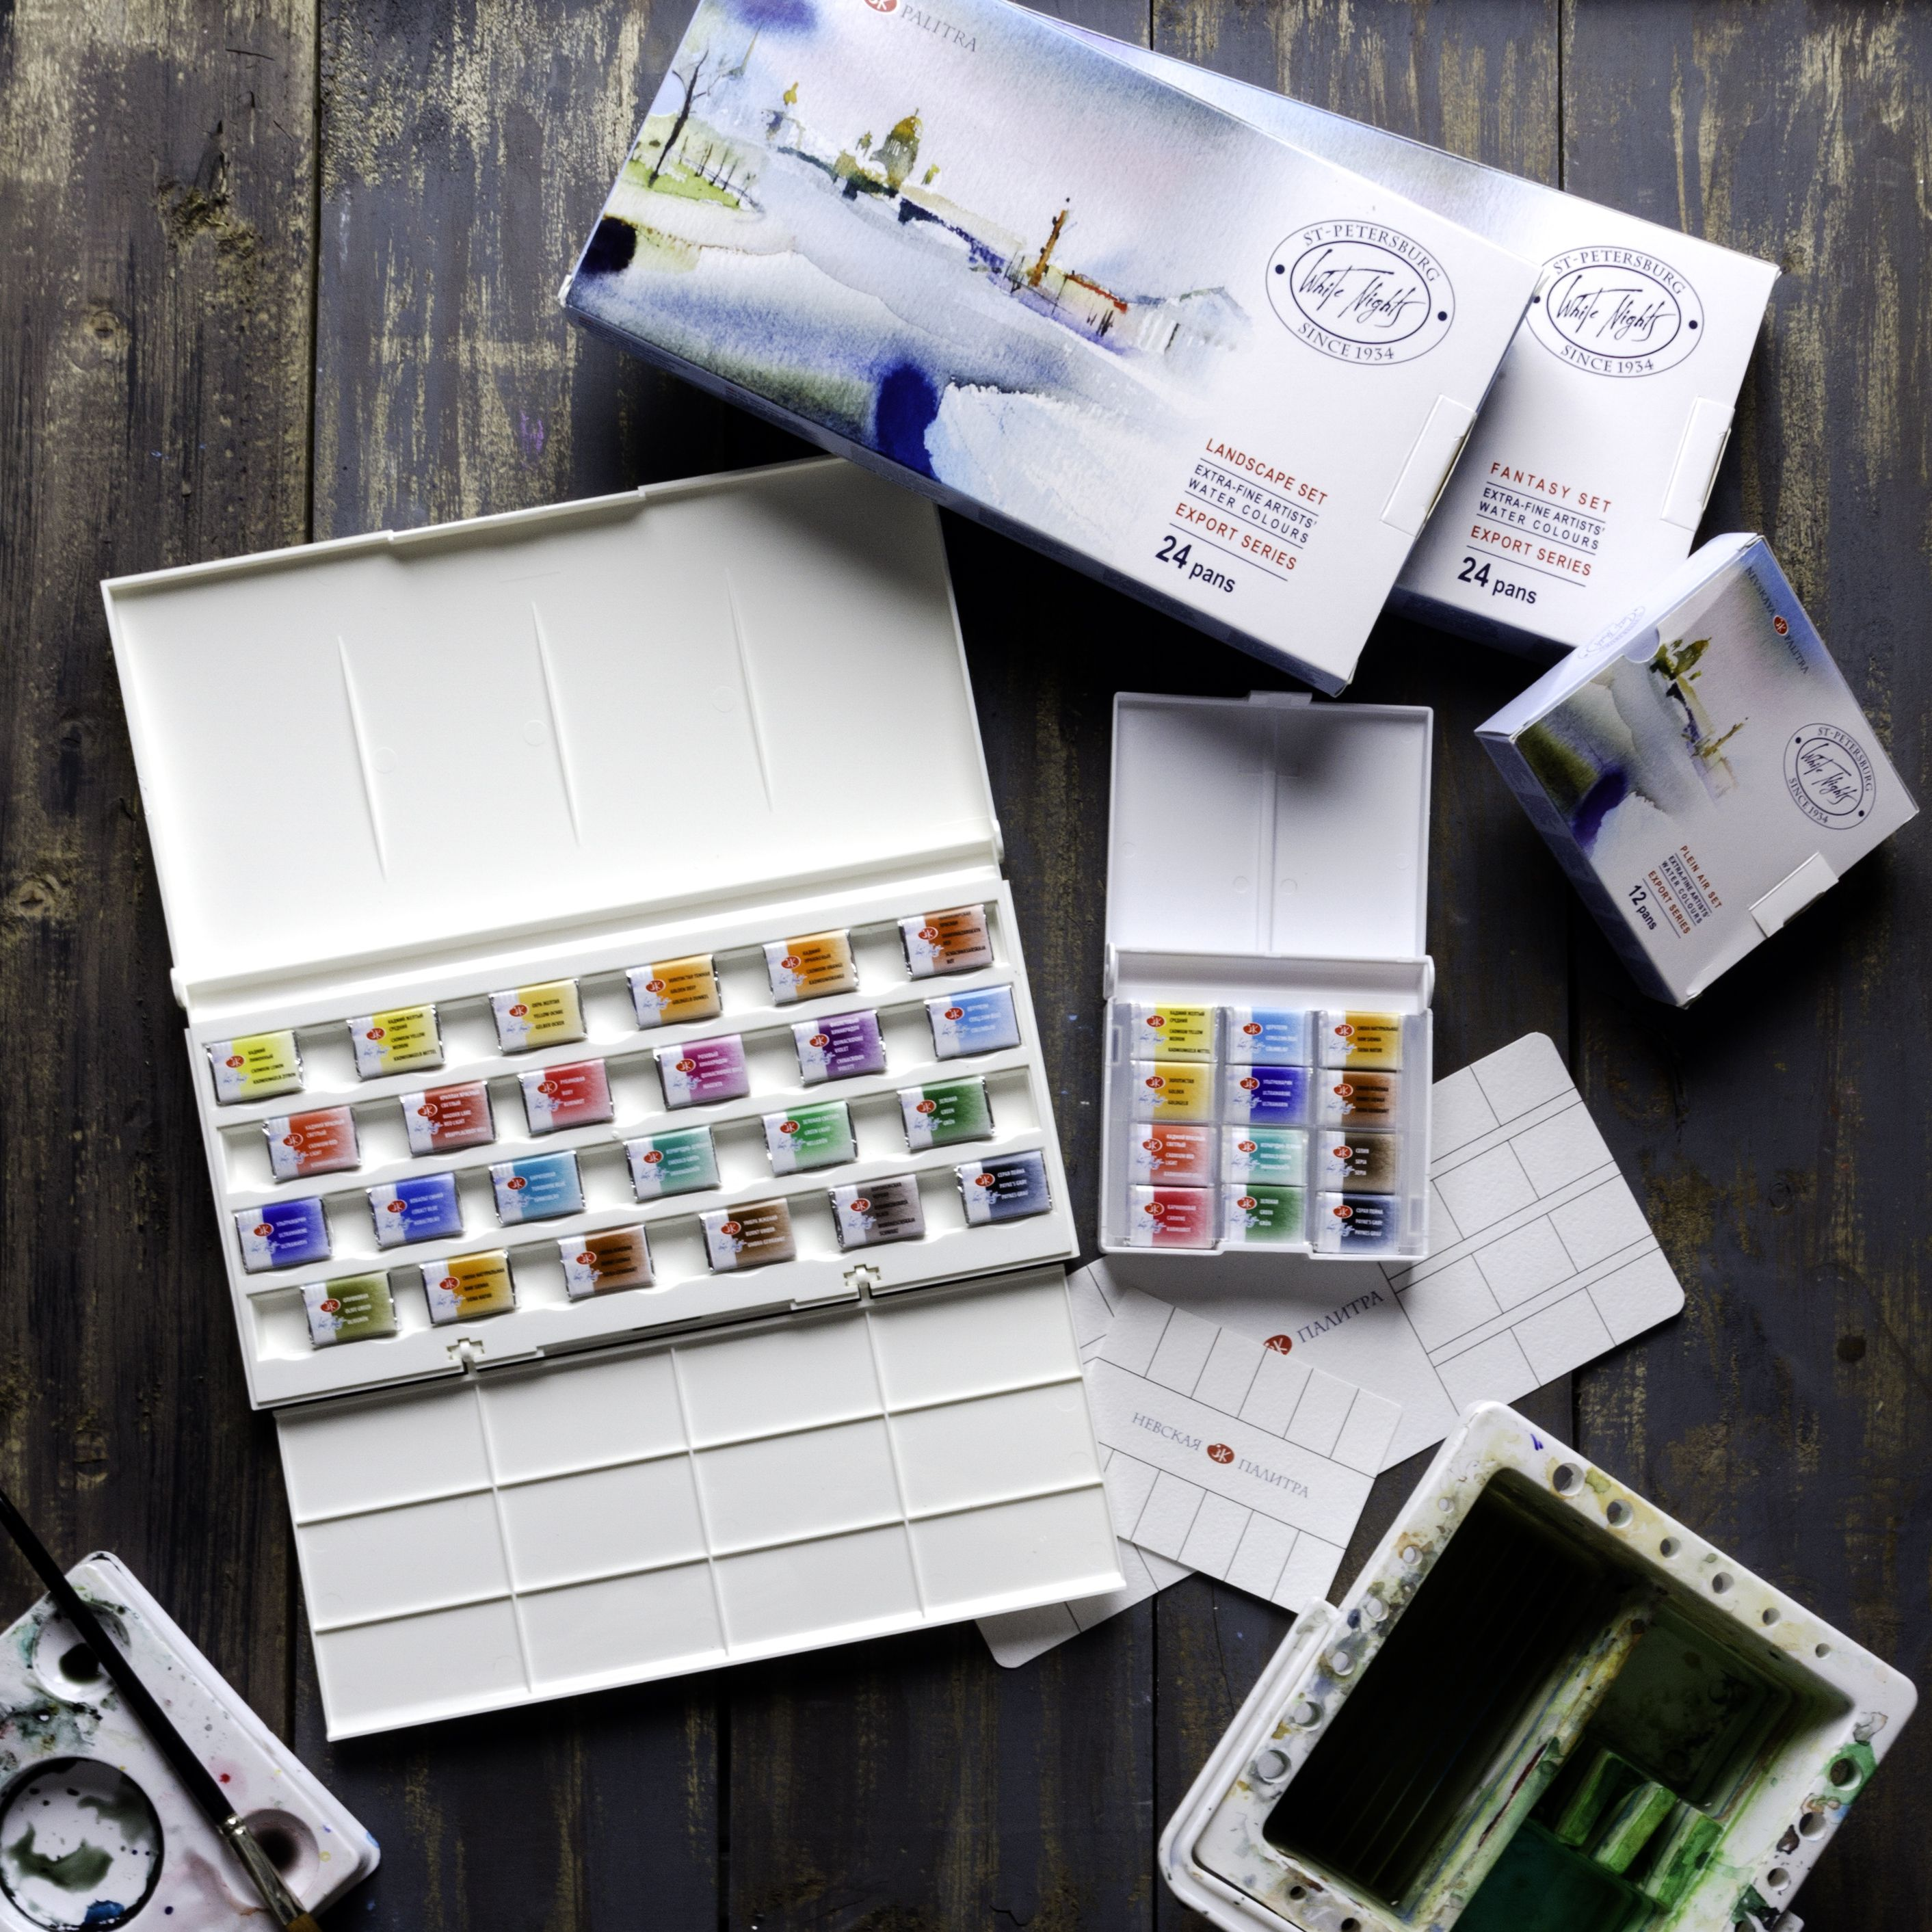 White Nights Watercolour Paints Have Been Produced In Russia By